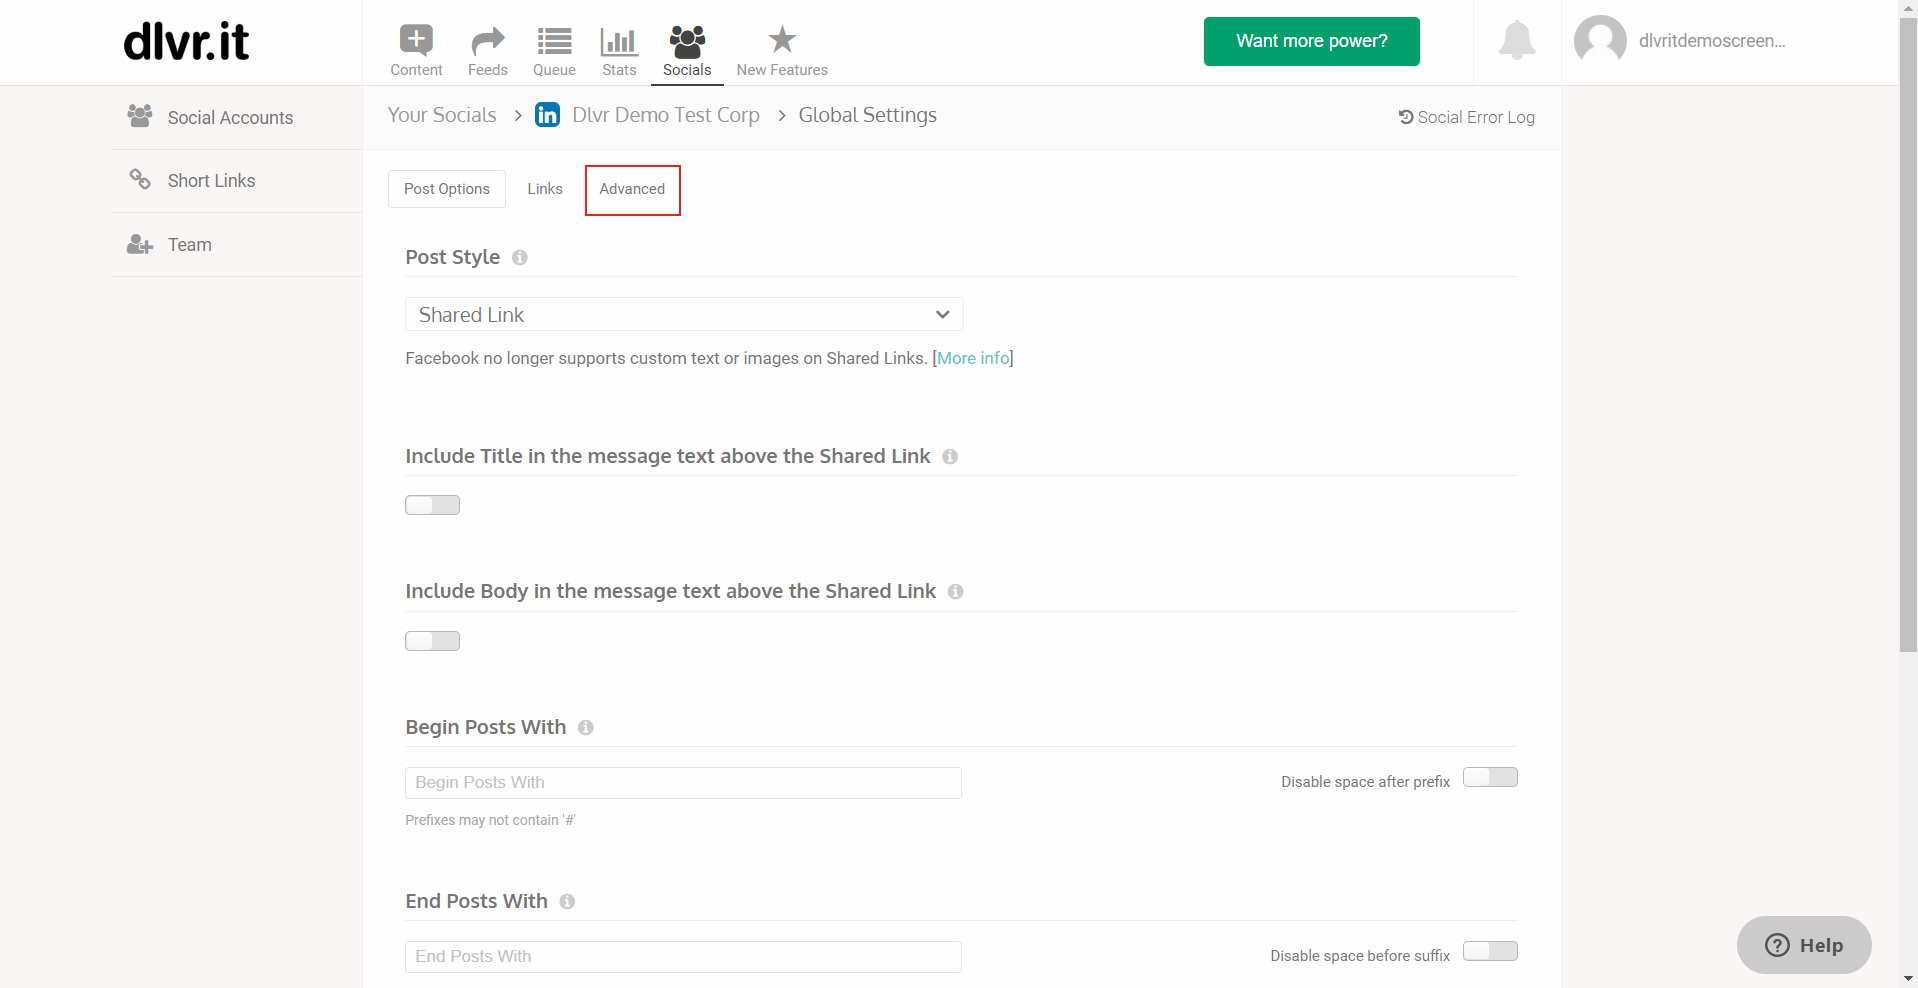 How do I enable photo posting from RSS Feeds? – dlvr it support